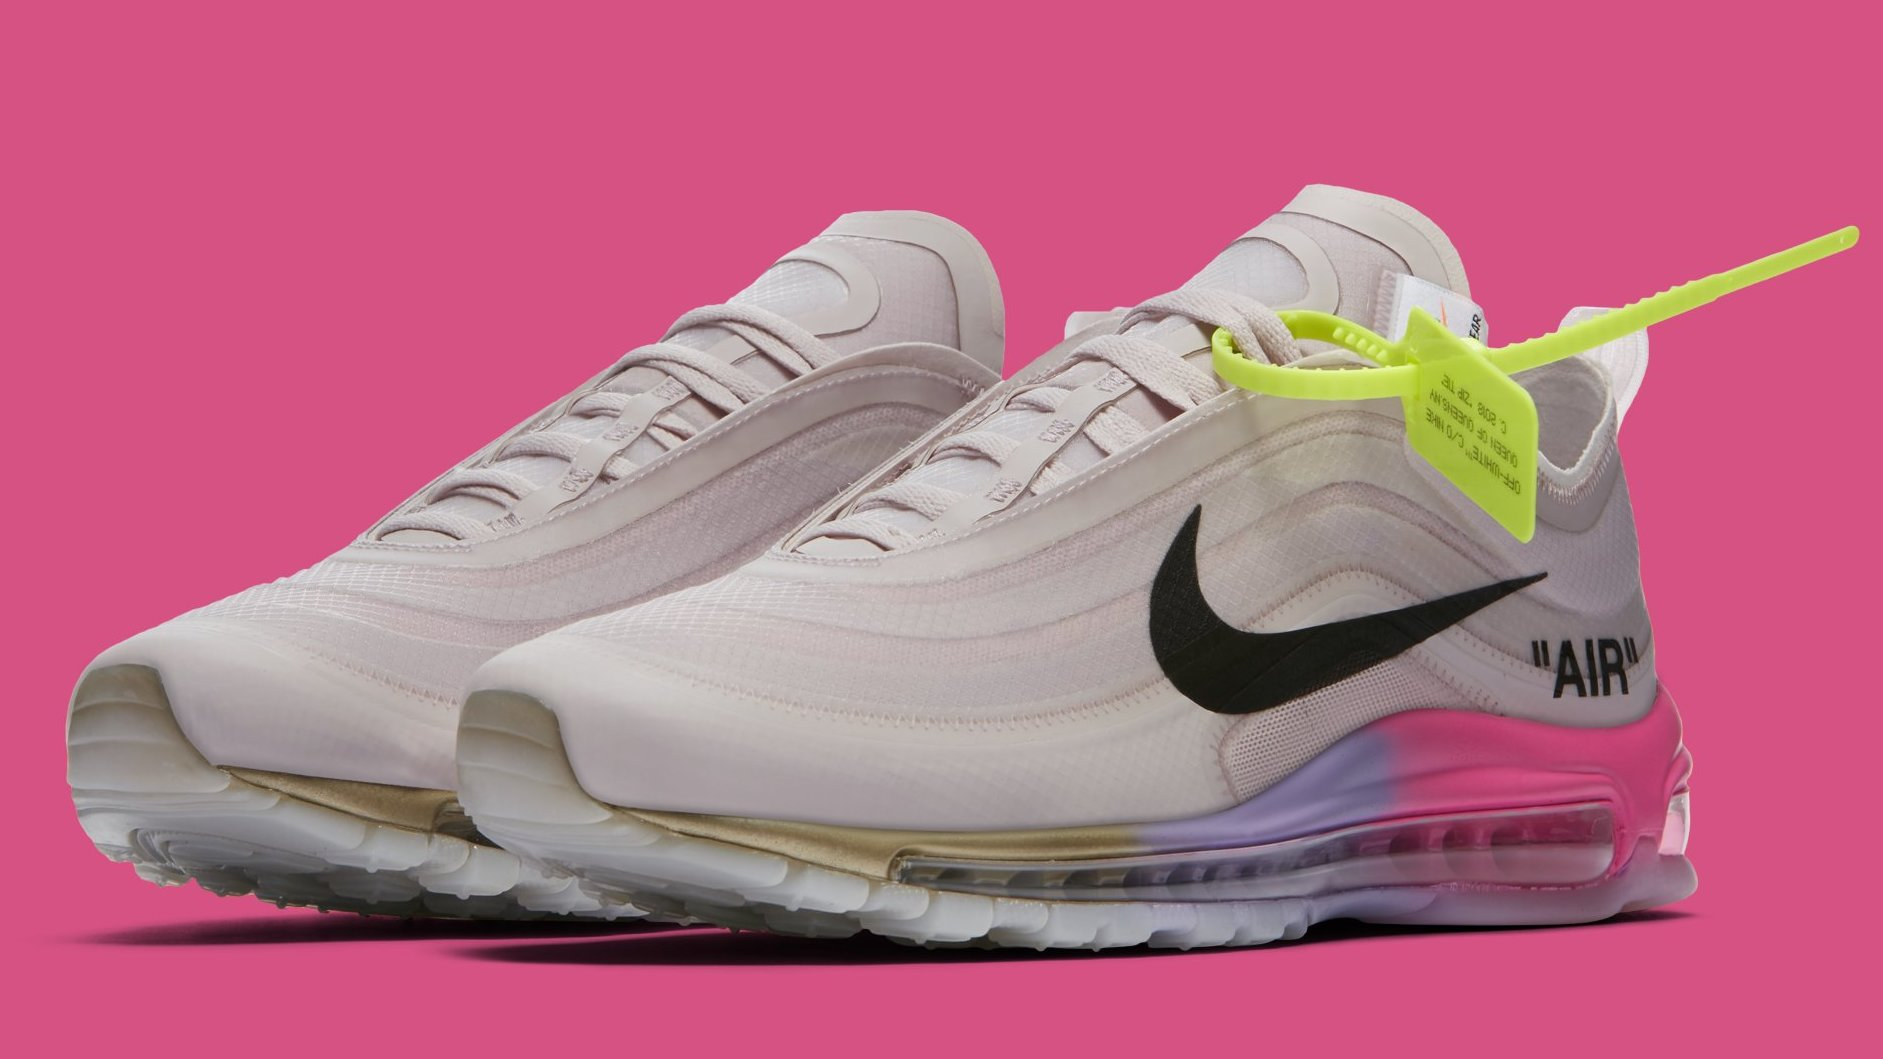 new style a0a64 3a609 ... sale serena williams off white x air max 97s released out of nowhere  92701 9e1ee